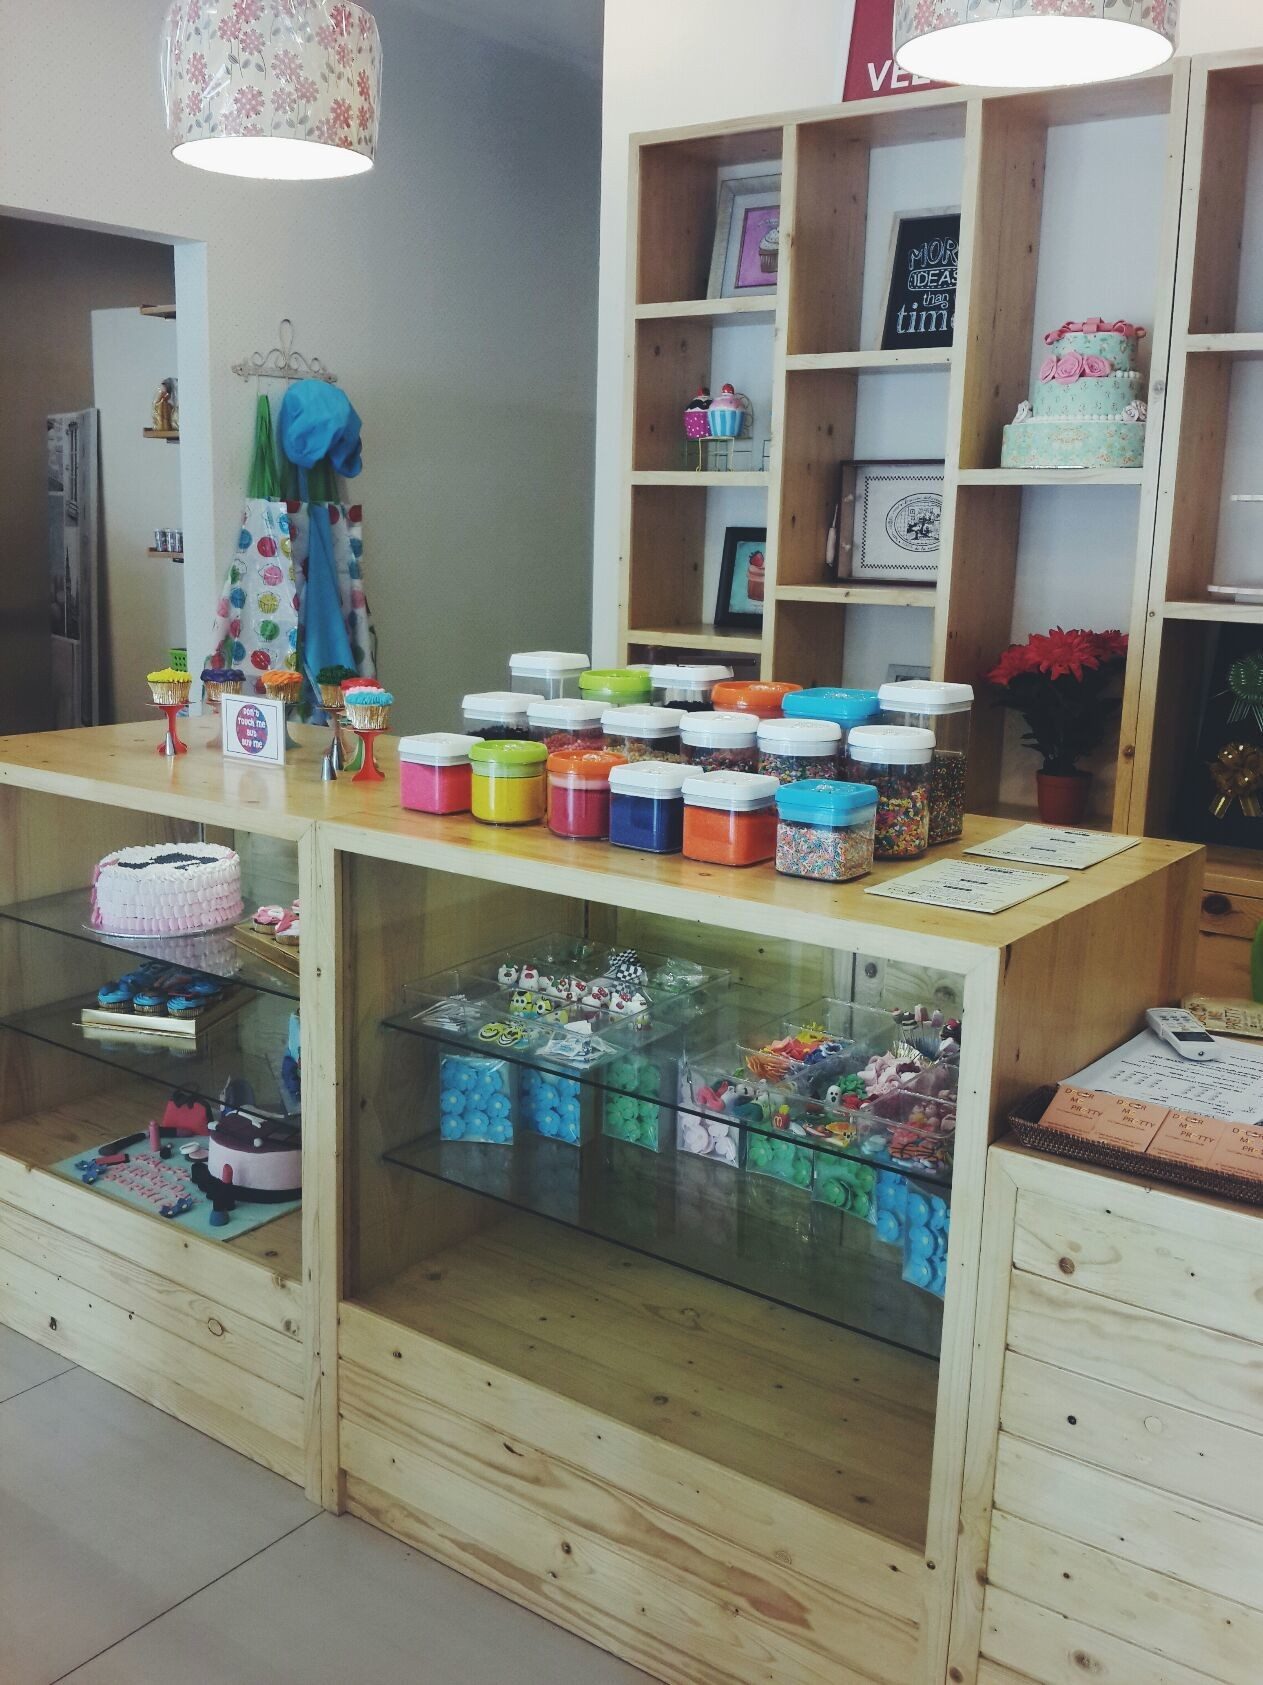 Décor Me Pretty. Do it yourself cakes and cupcakes studio!